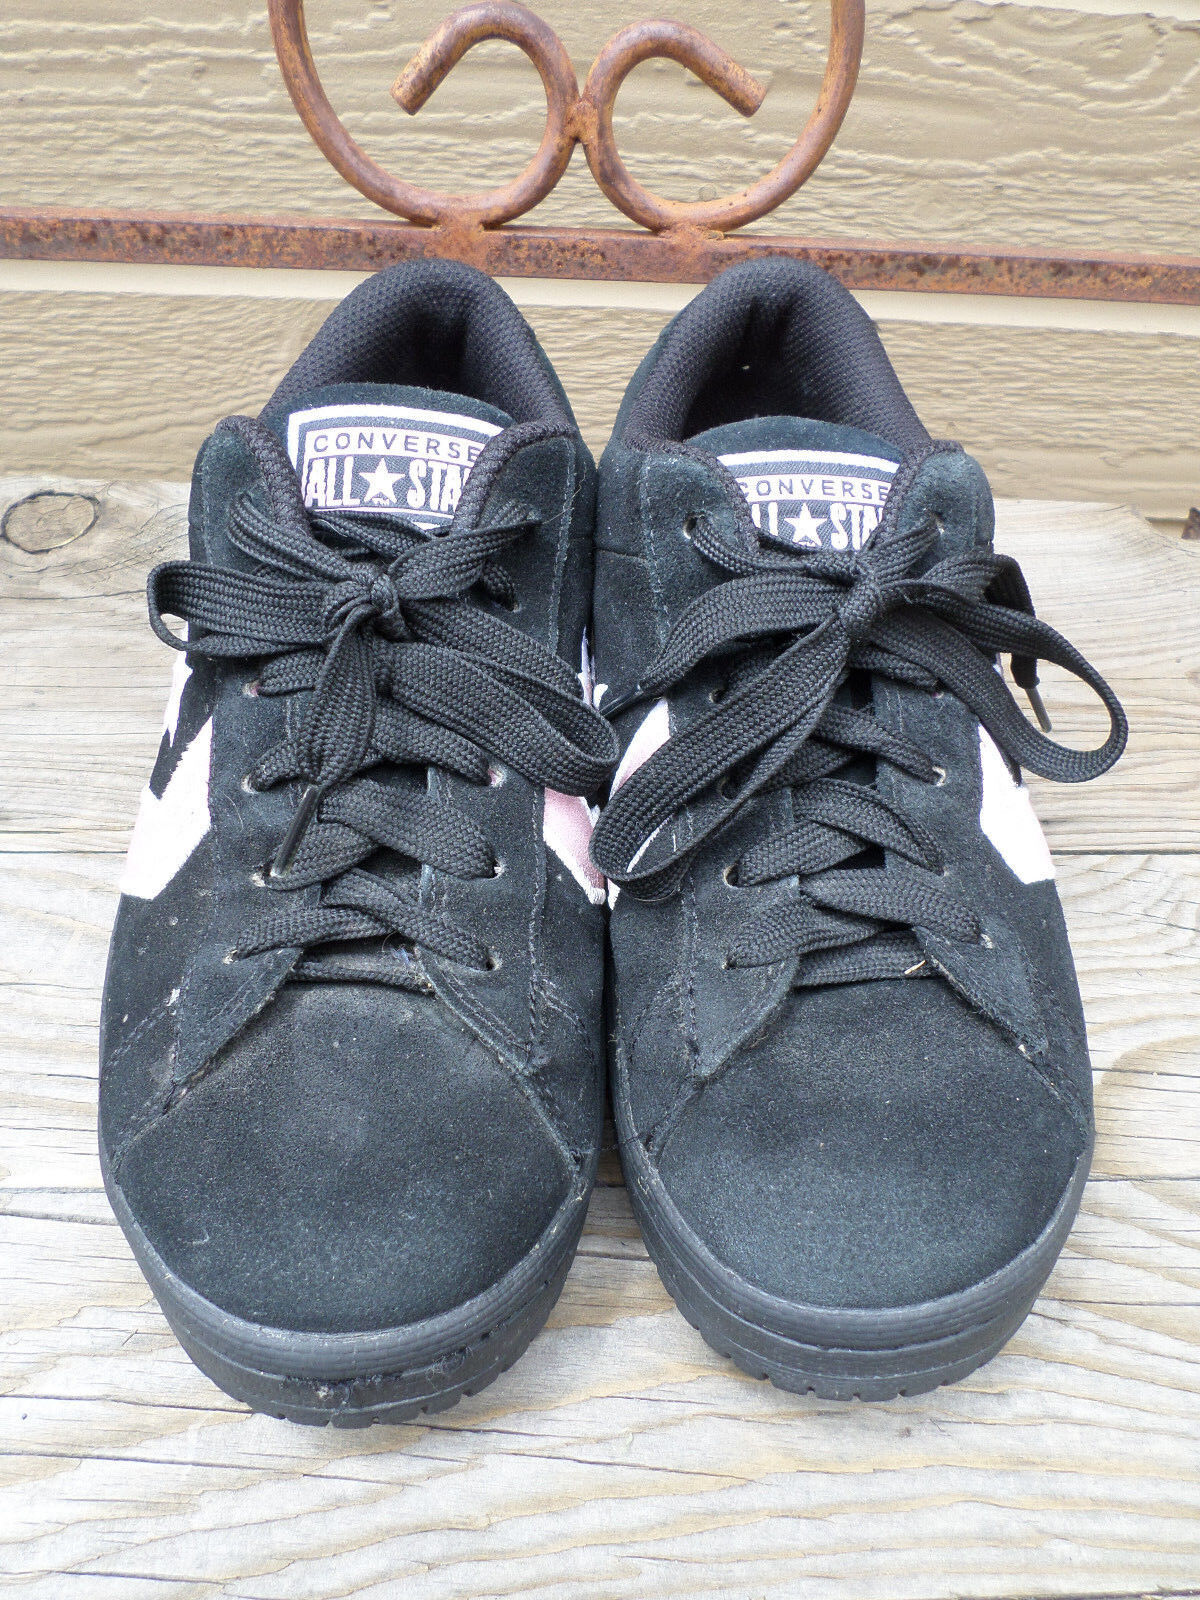 Converse All Star Black Suede Sneakers Women's 9.5